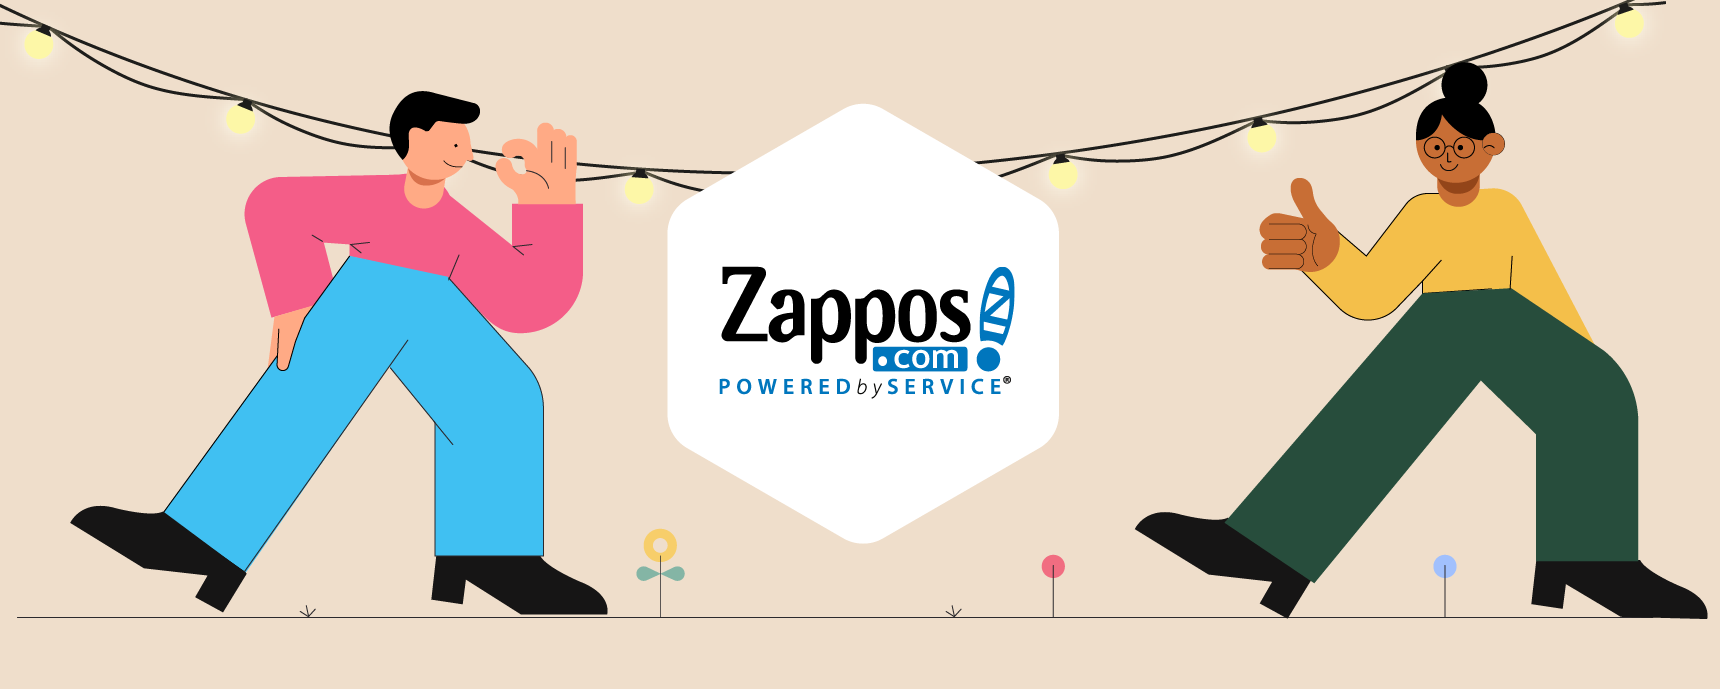 Zappos-Onboarding-Experience-Freshteam